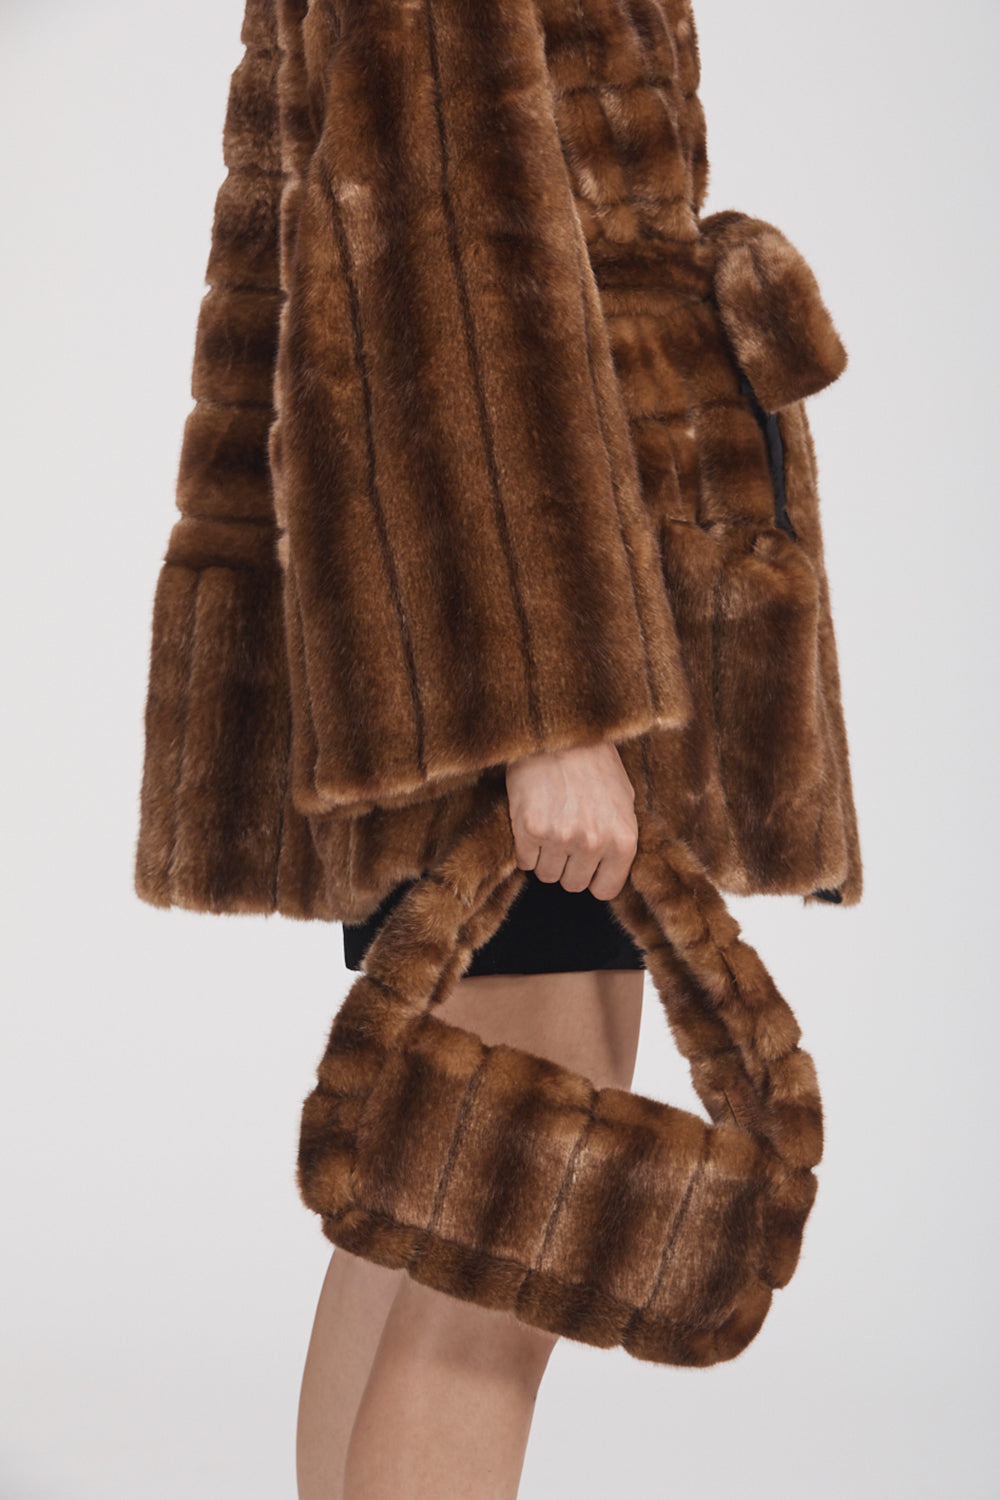 Marei1998 Yoshino Cot In Classic Brown Hue. Perfect For Cold Weather, This It Is Made From Plush Faux Fur, Which Feels So Warm And Comfortable. Cut In A Slight A-Lined Shape And Fully Lined, It Is Ideal For Smooth Layering. Side View.